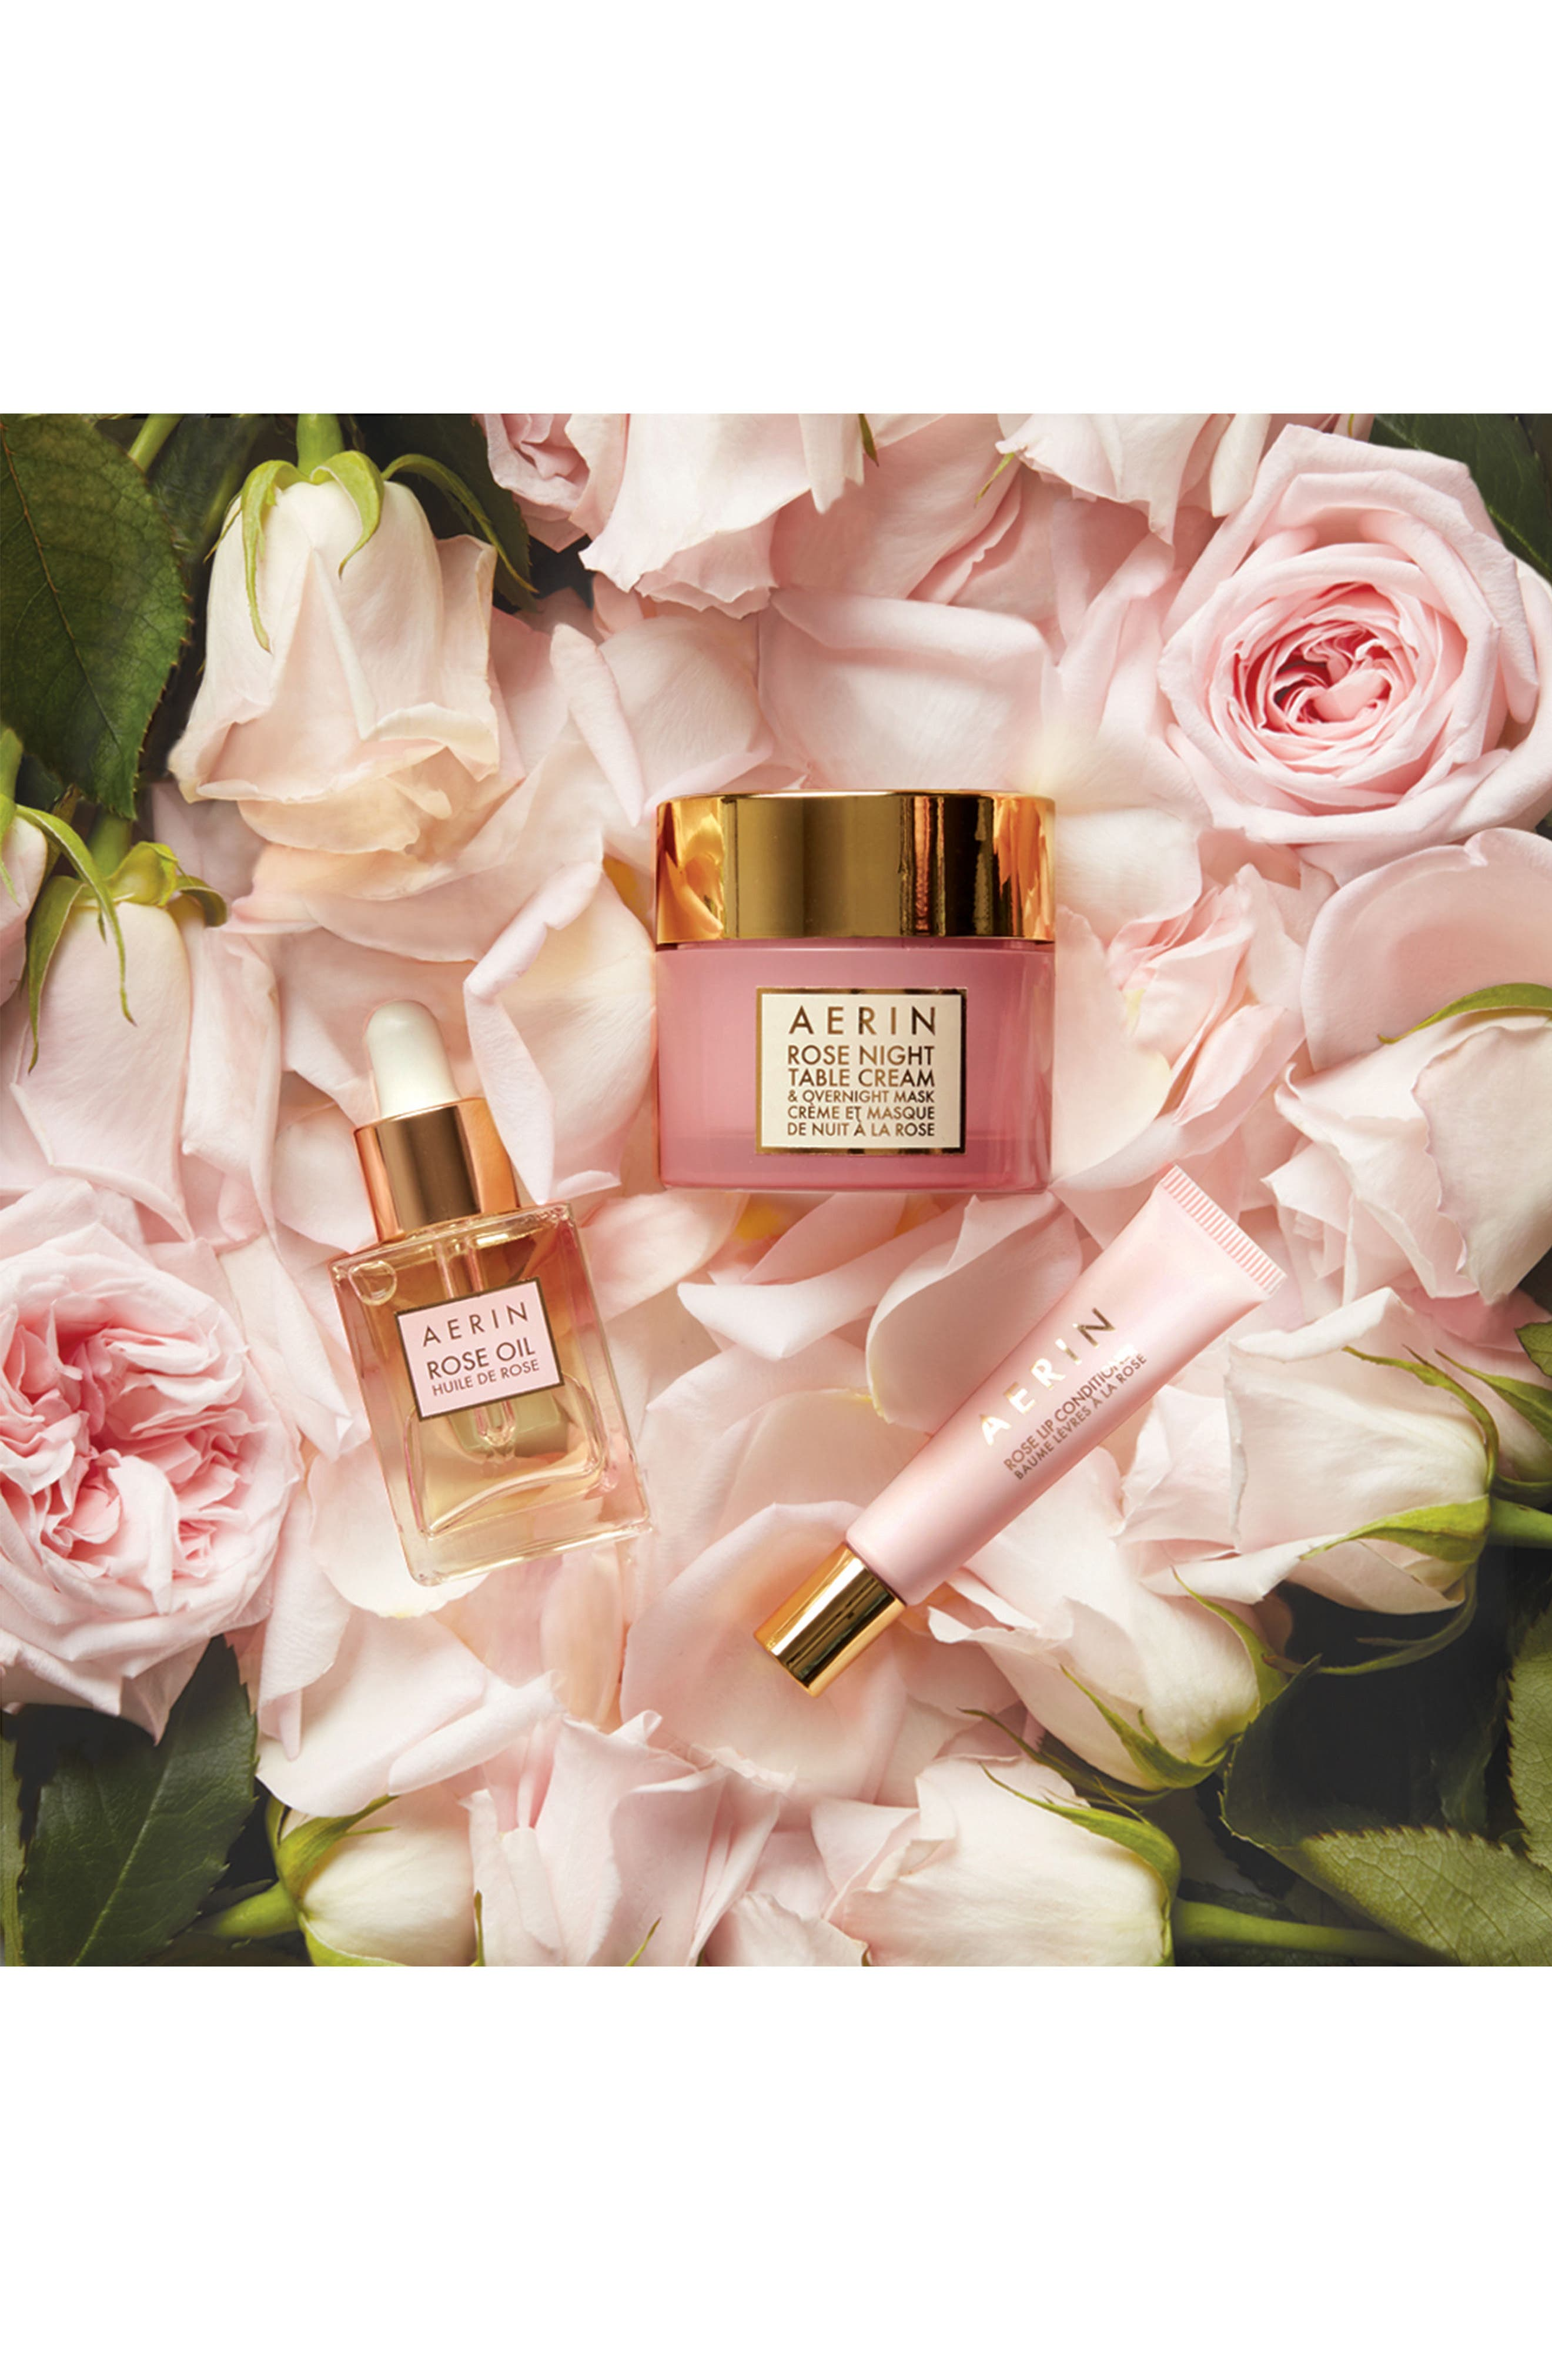 AERIN Beauty Rose Night Table Cream & Overnight Mask,                             Alternate thumbnail 3, color,                             NO COLOR